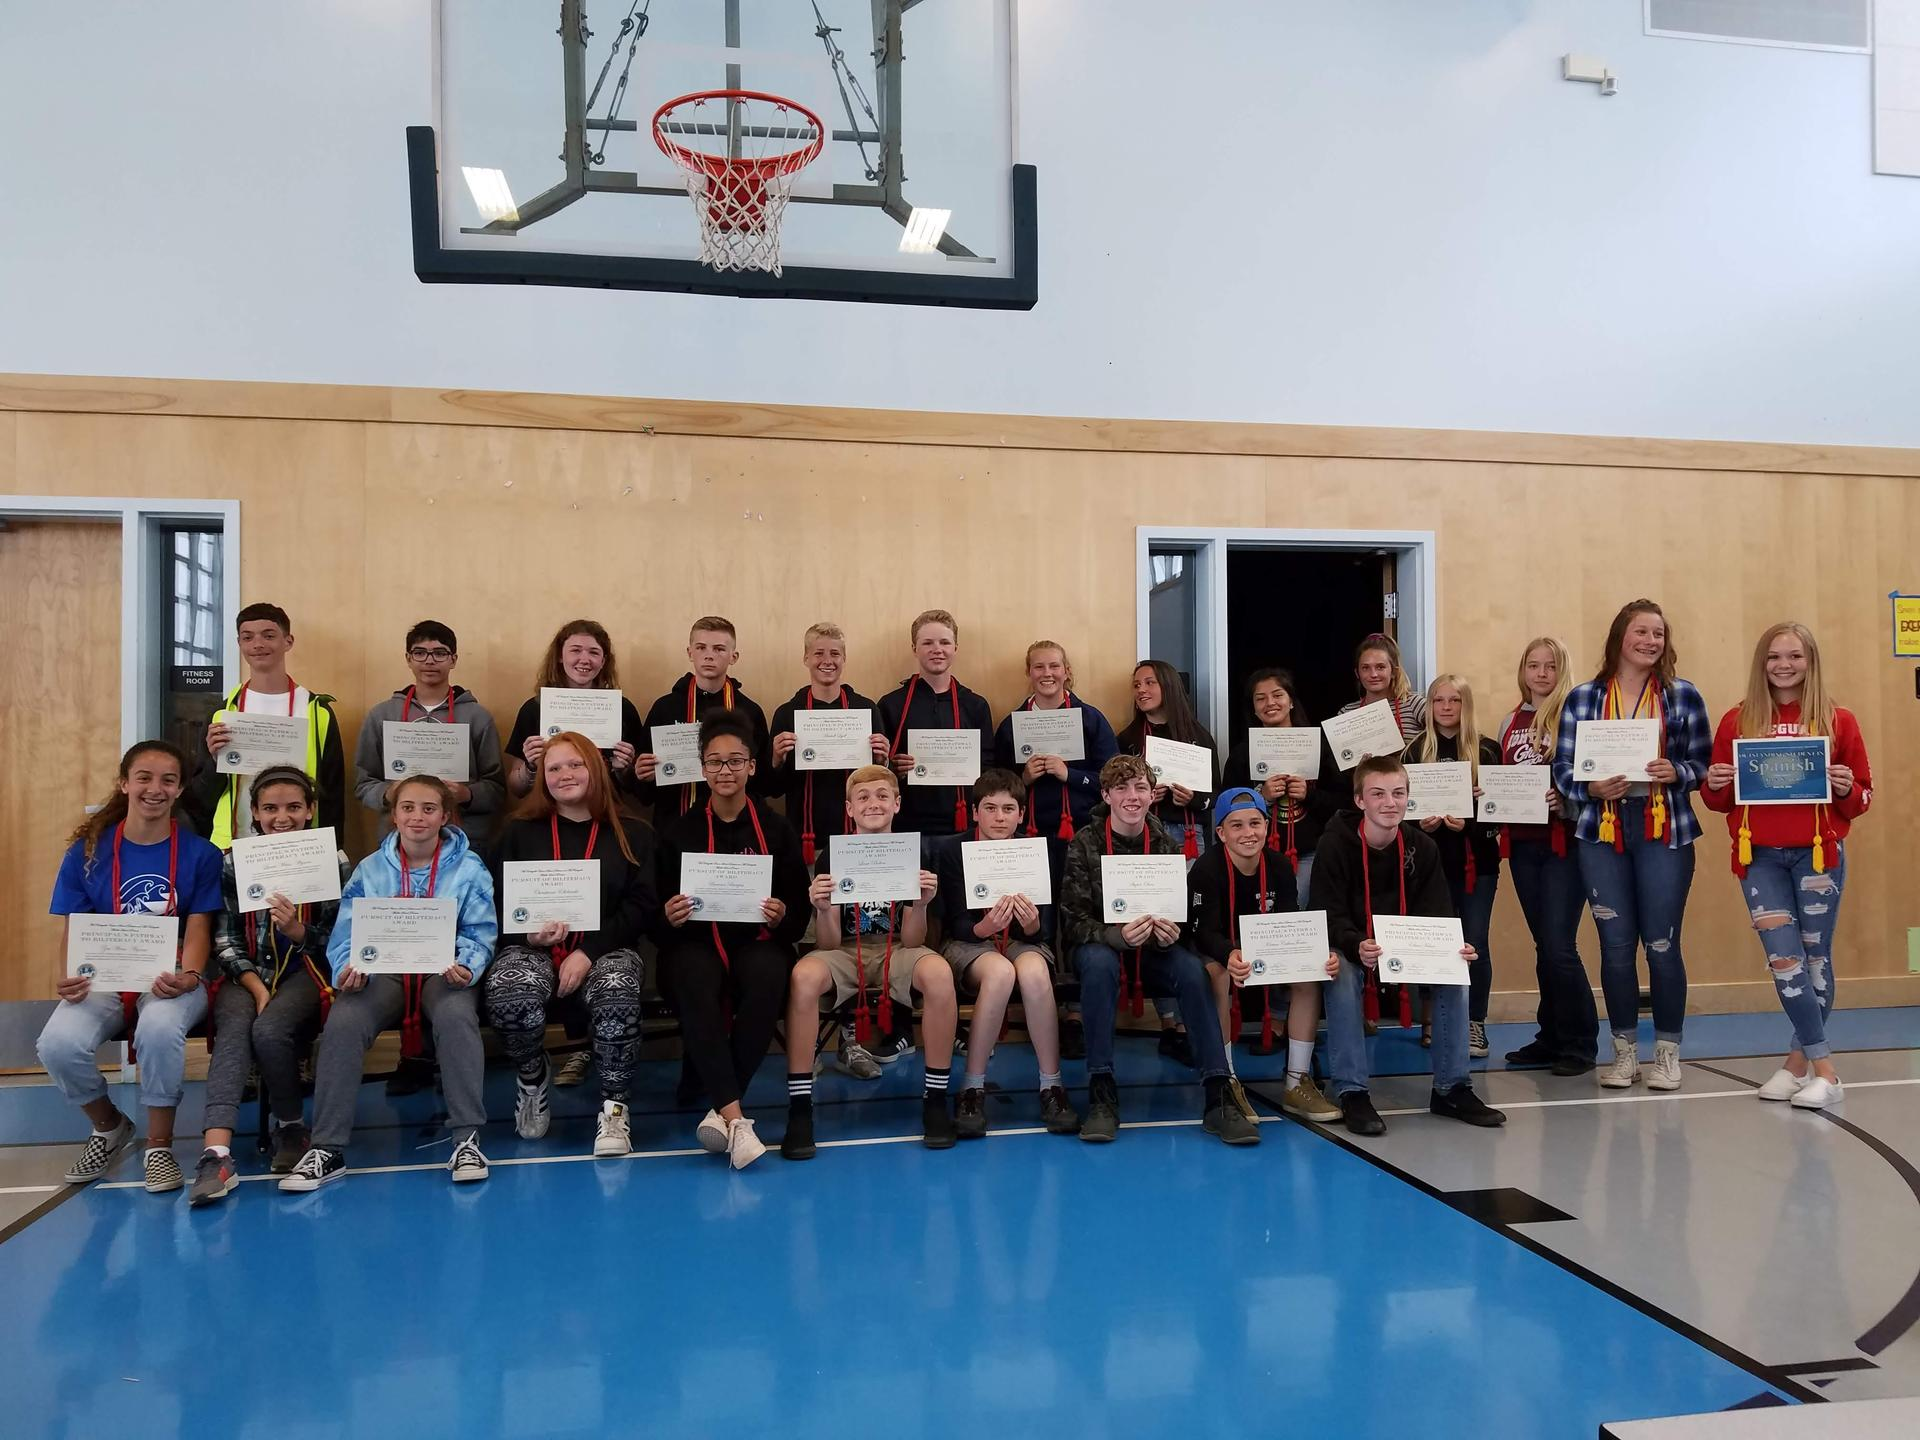 students with CA Seal of Biliteracy Awards